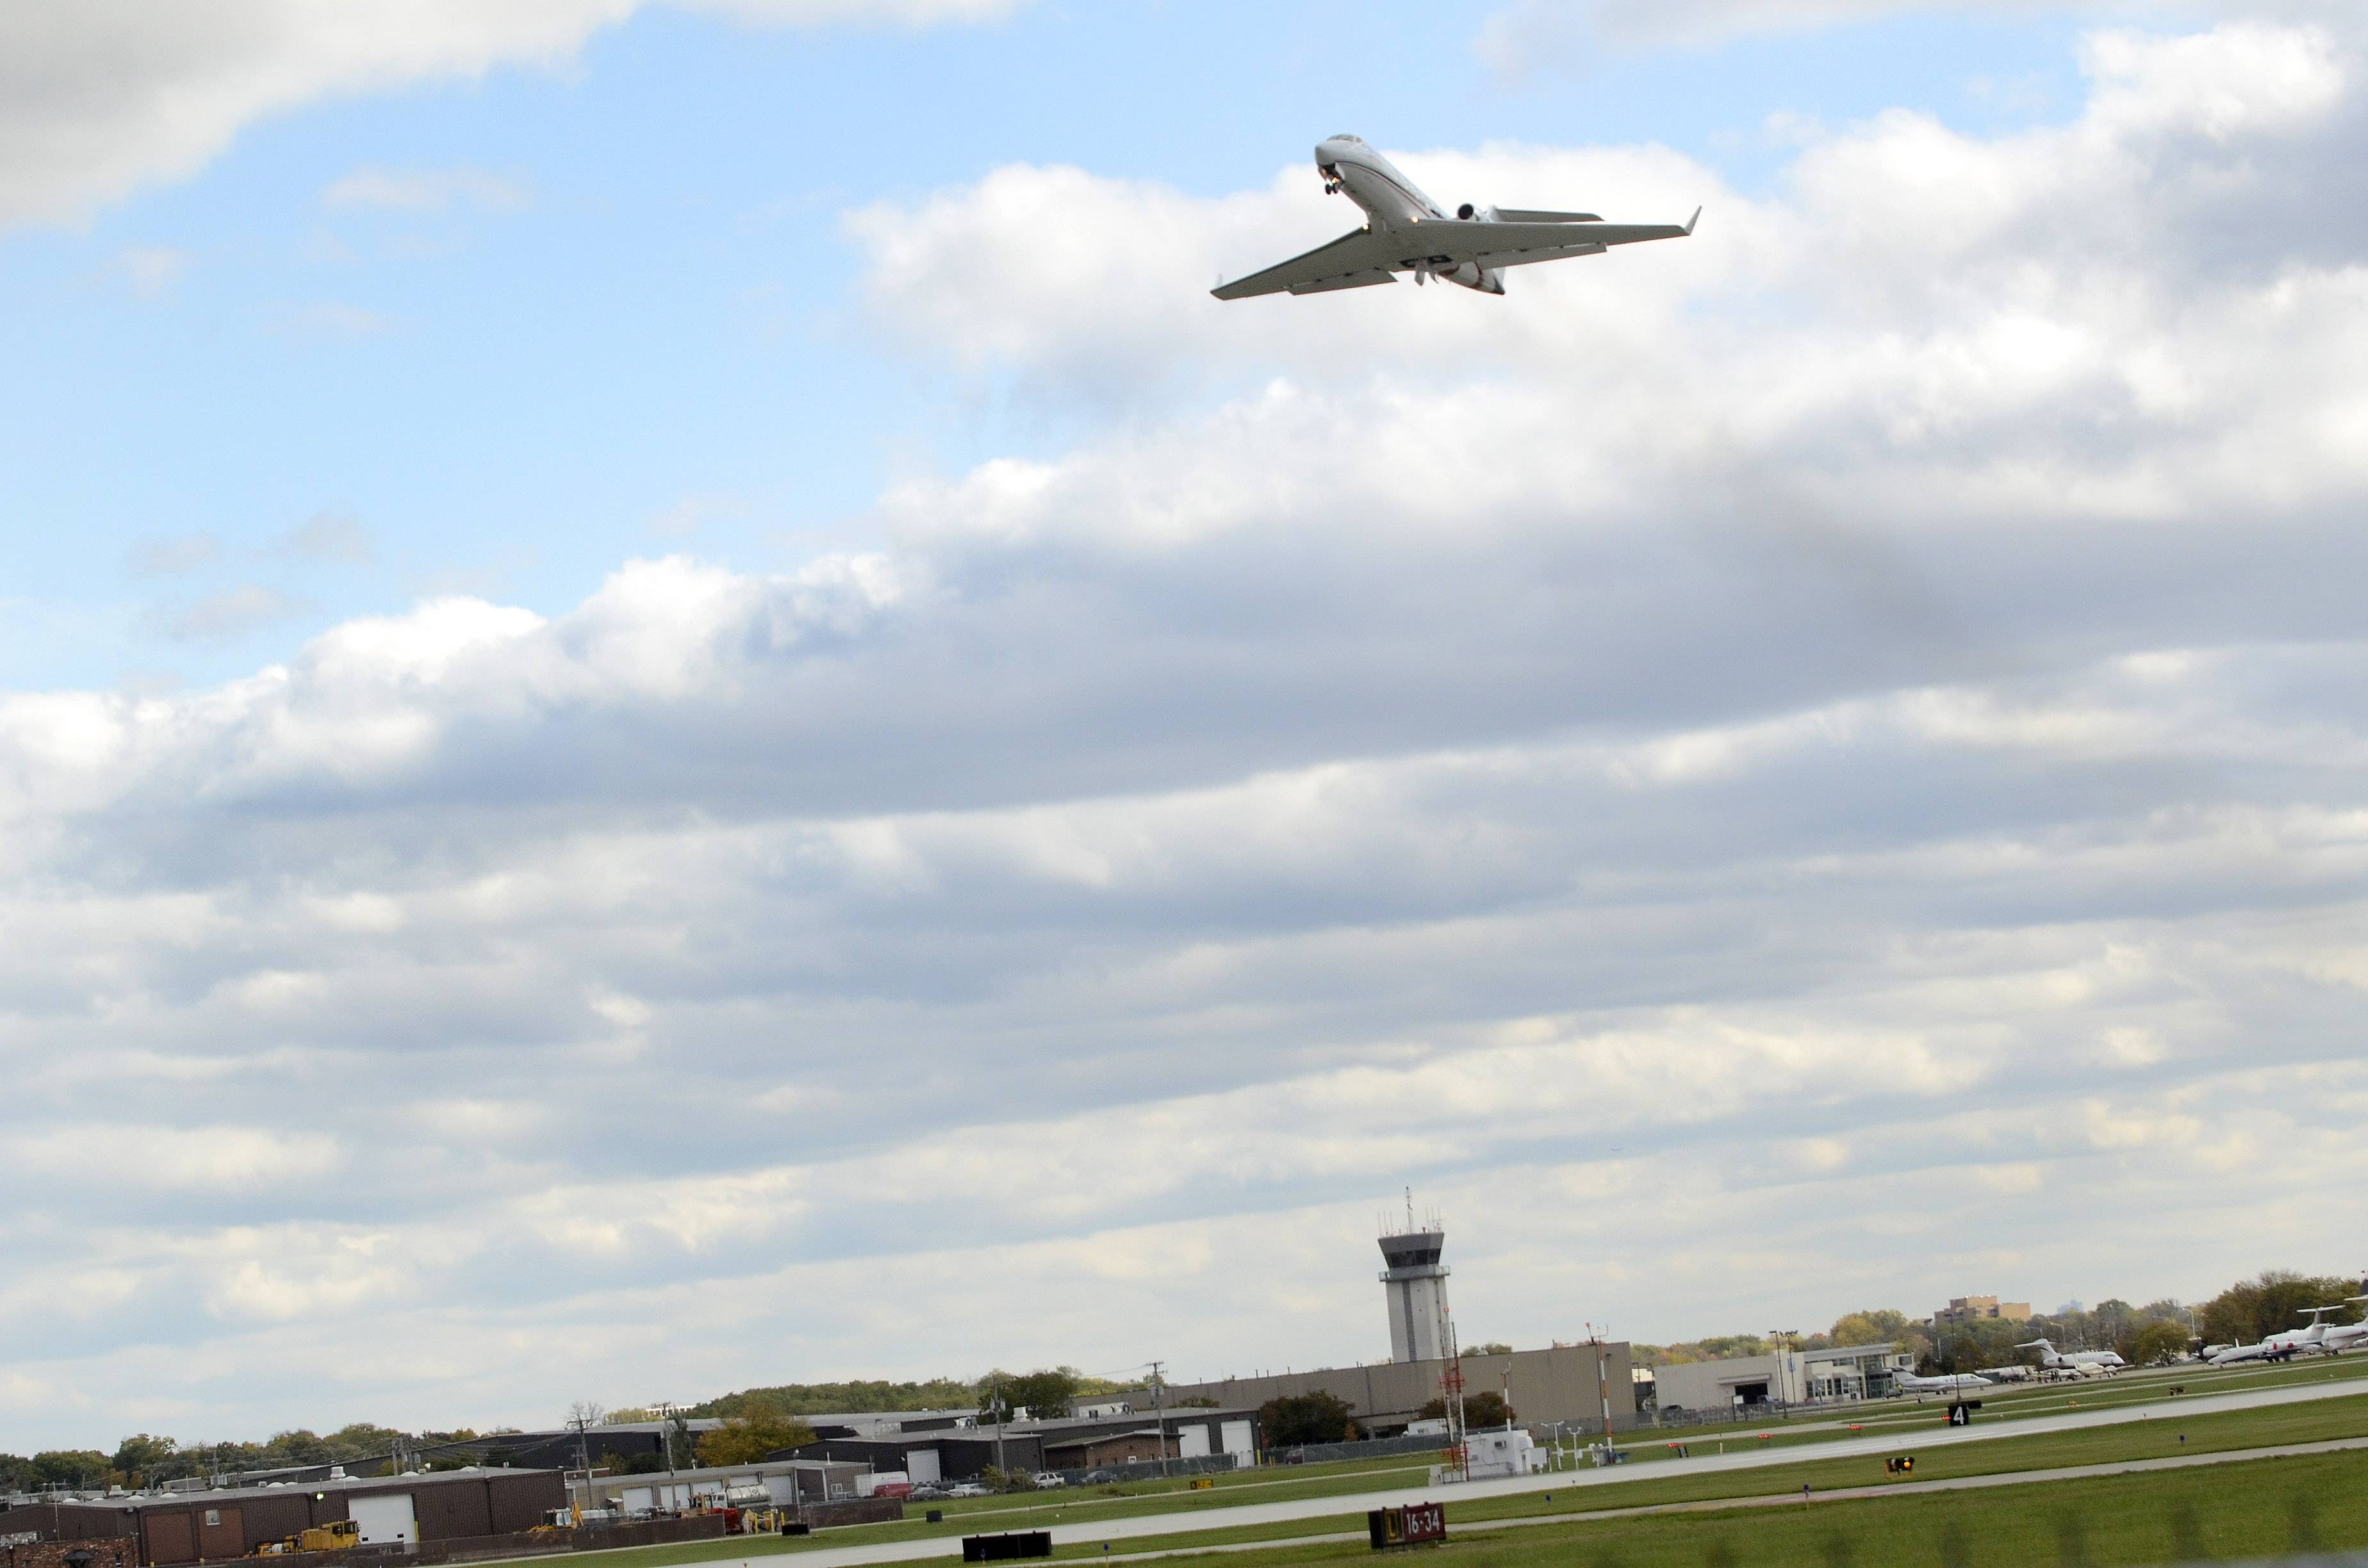 A jet takes off from Chicago Executive Airport, jointly owned by Wheeling and Prospect Heights.